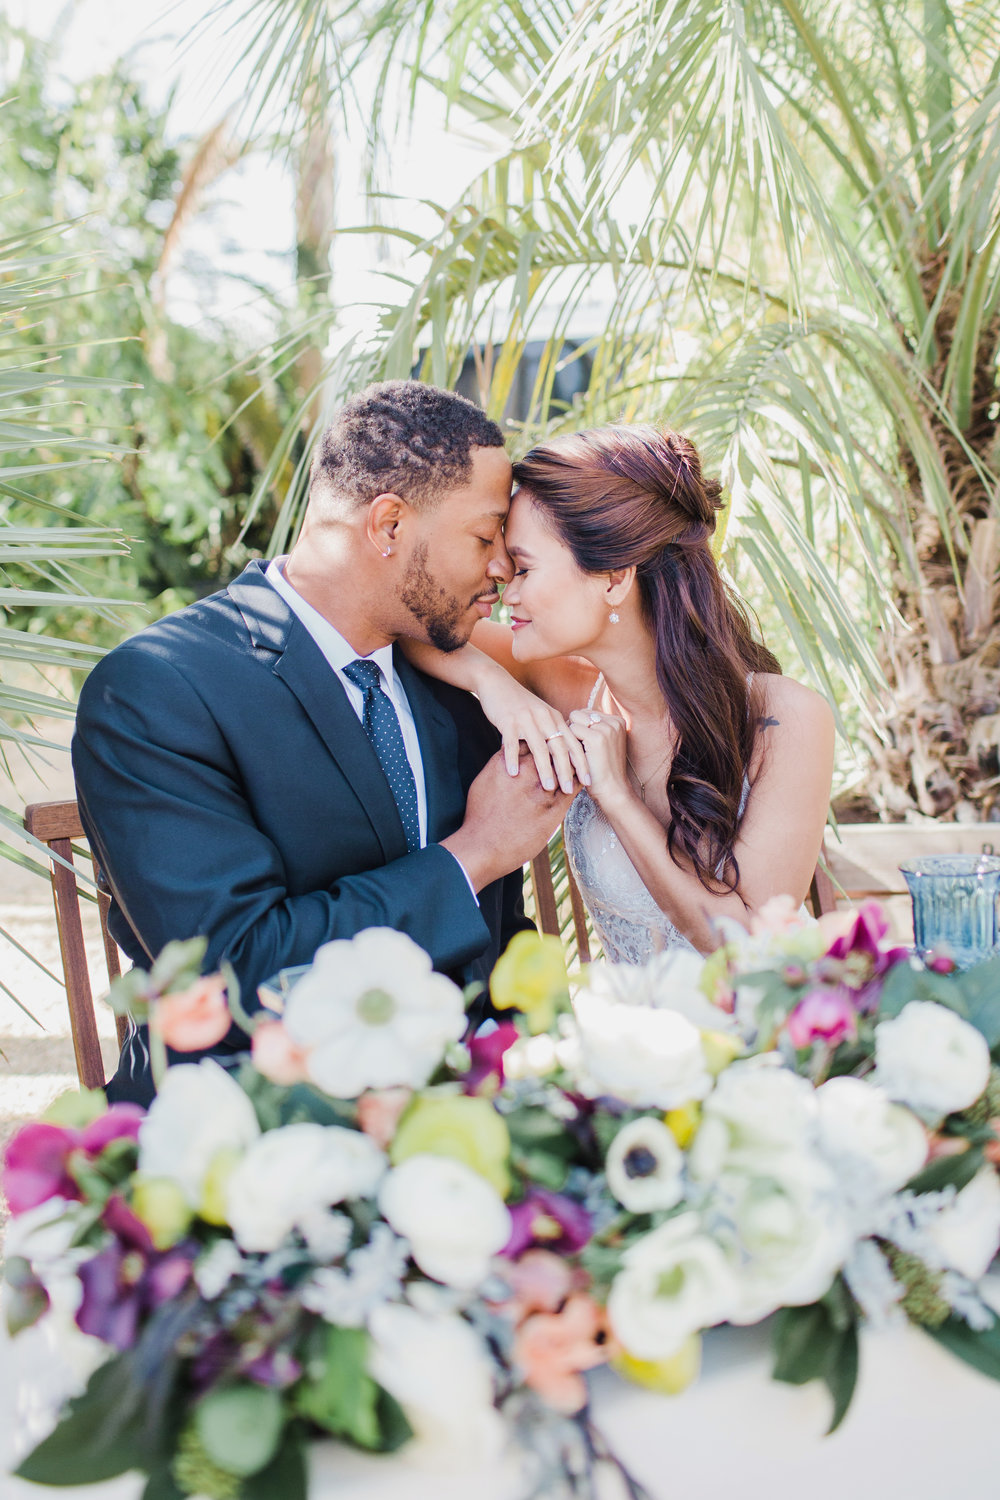 Sweetheart table with purple yellow and white flowers in Santa Barbara.jpg